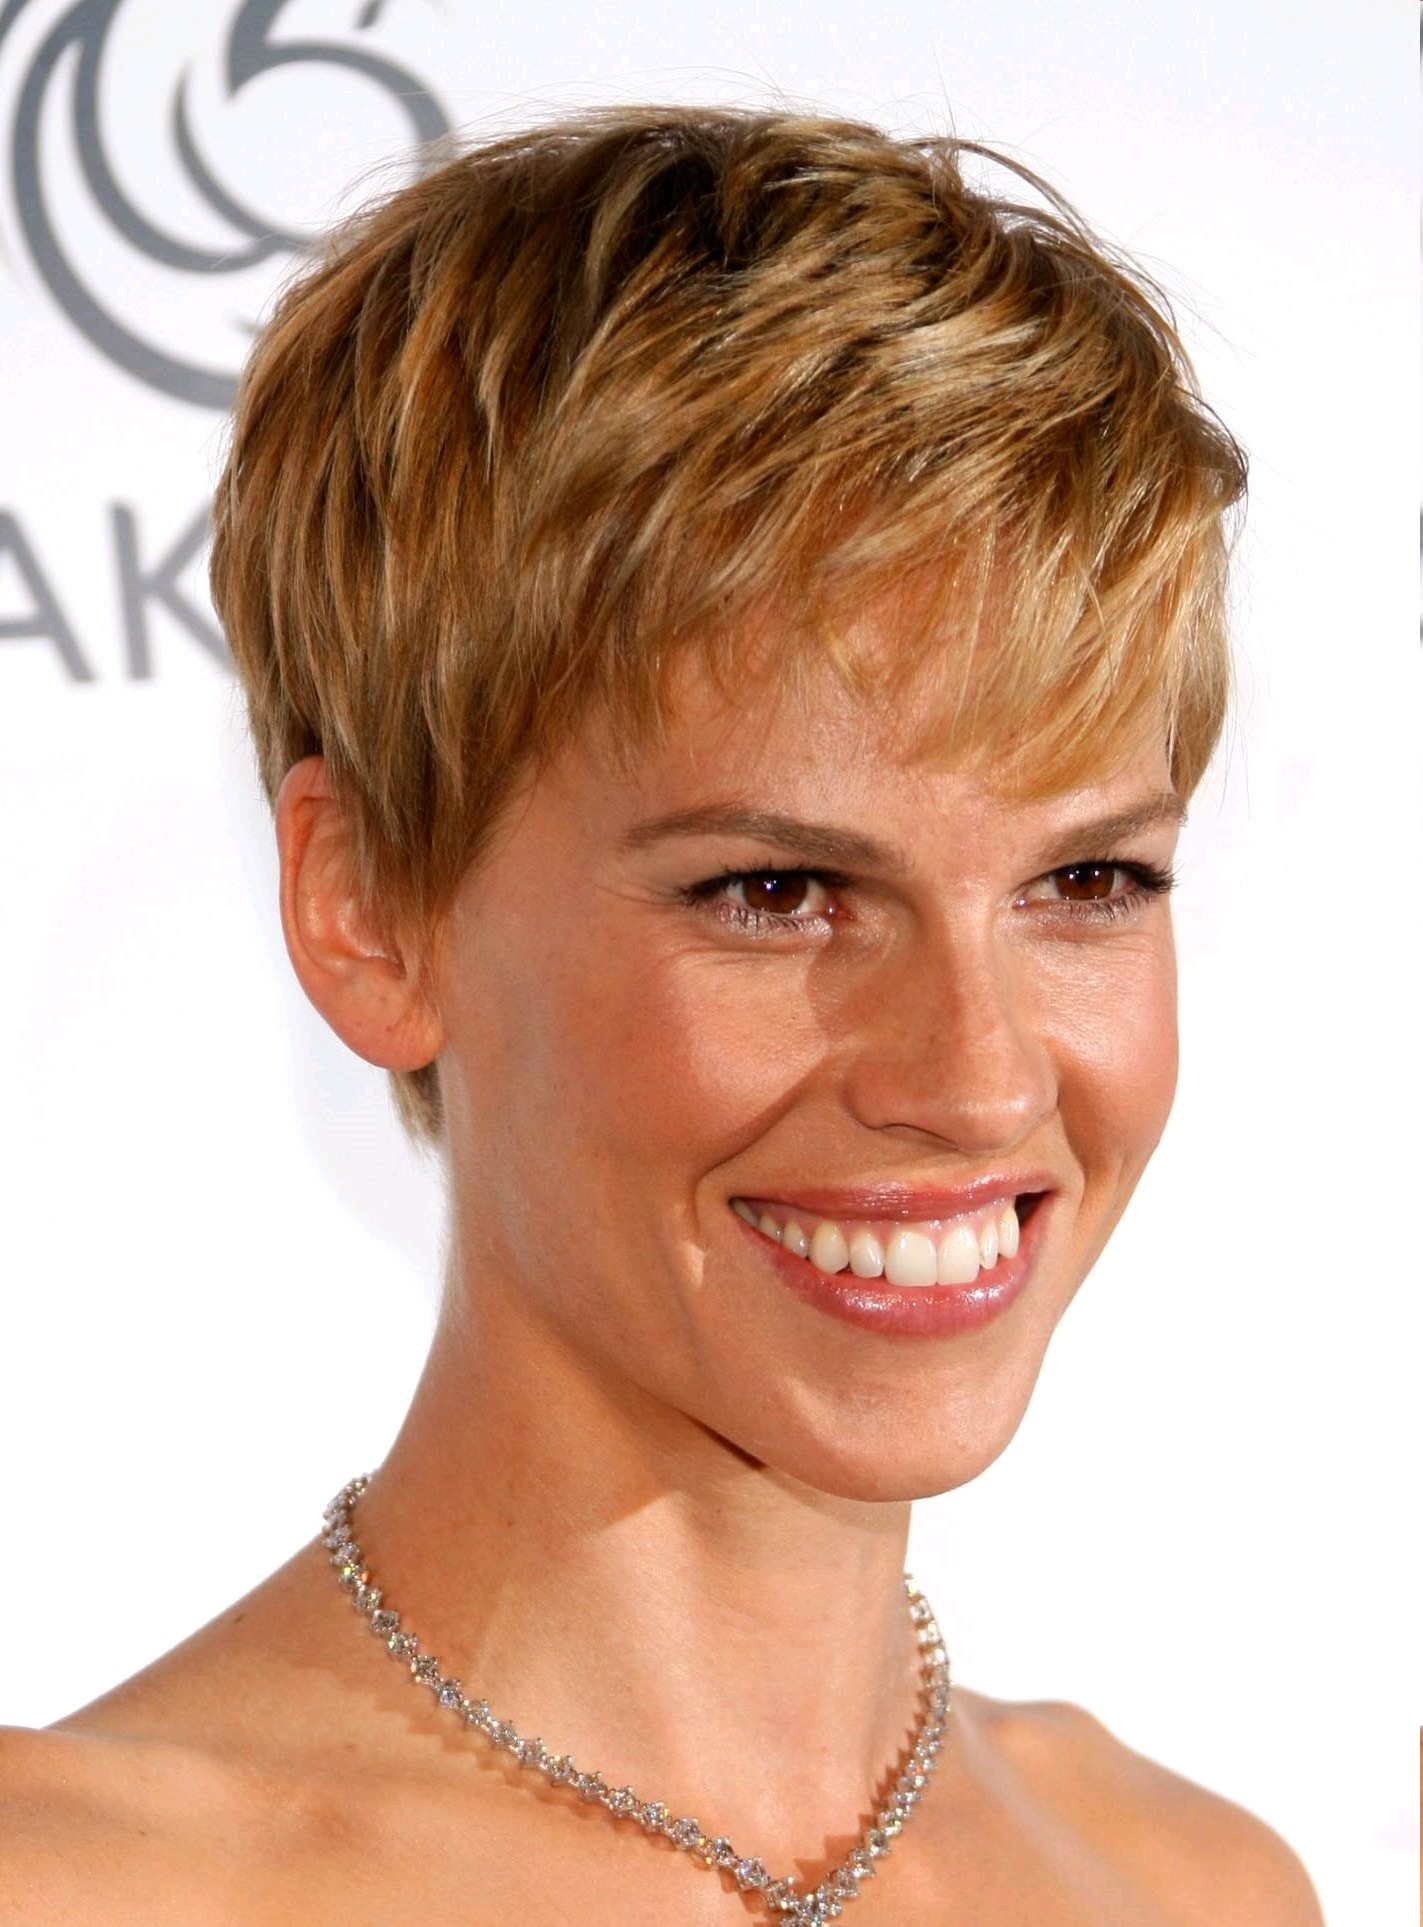 sassy Short haircuts for women that Brings plete Elegance